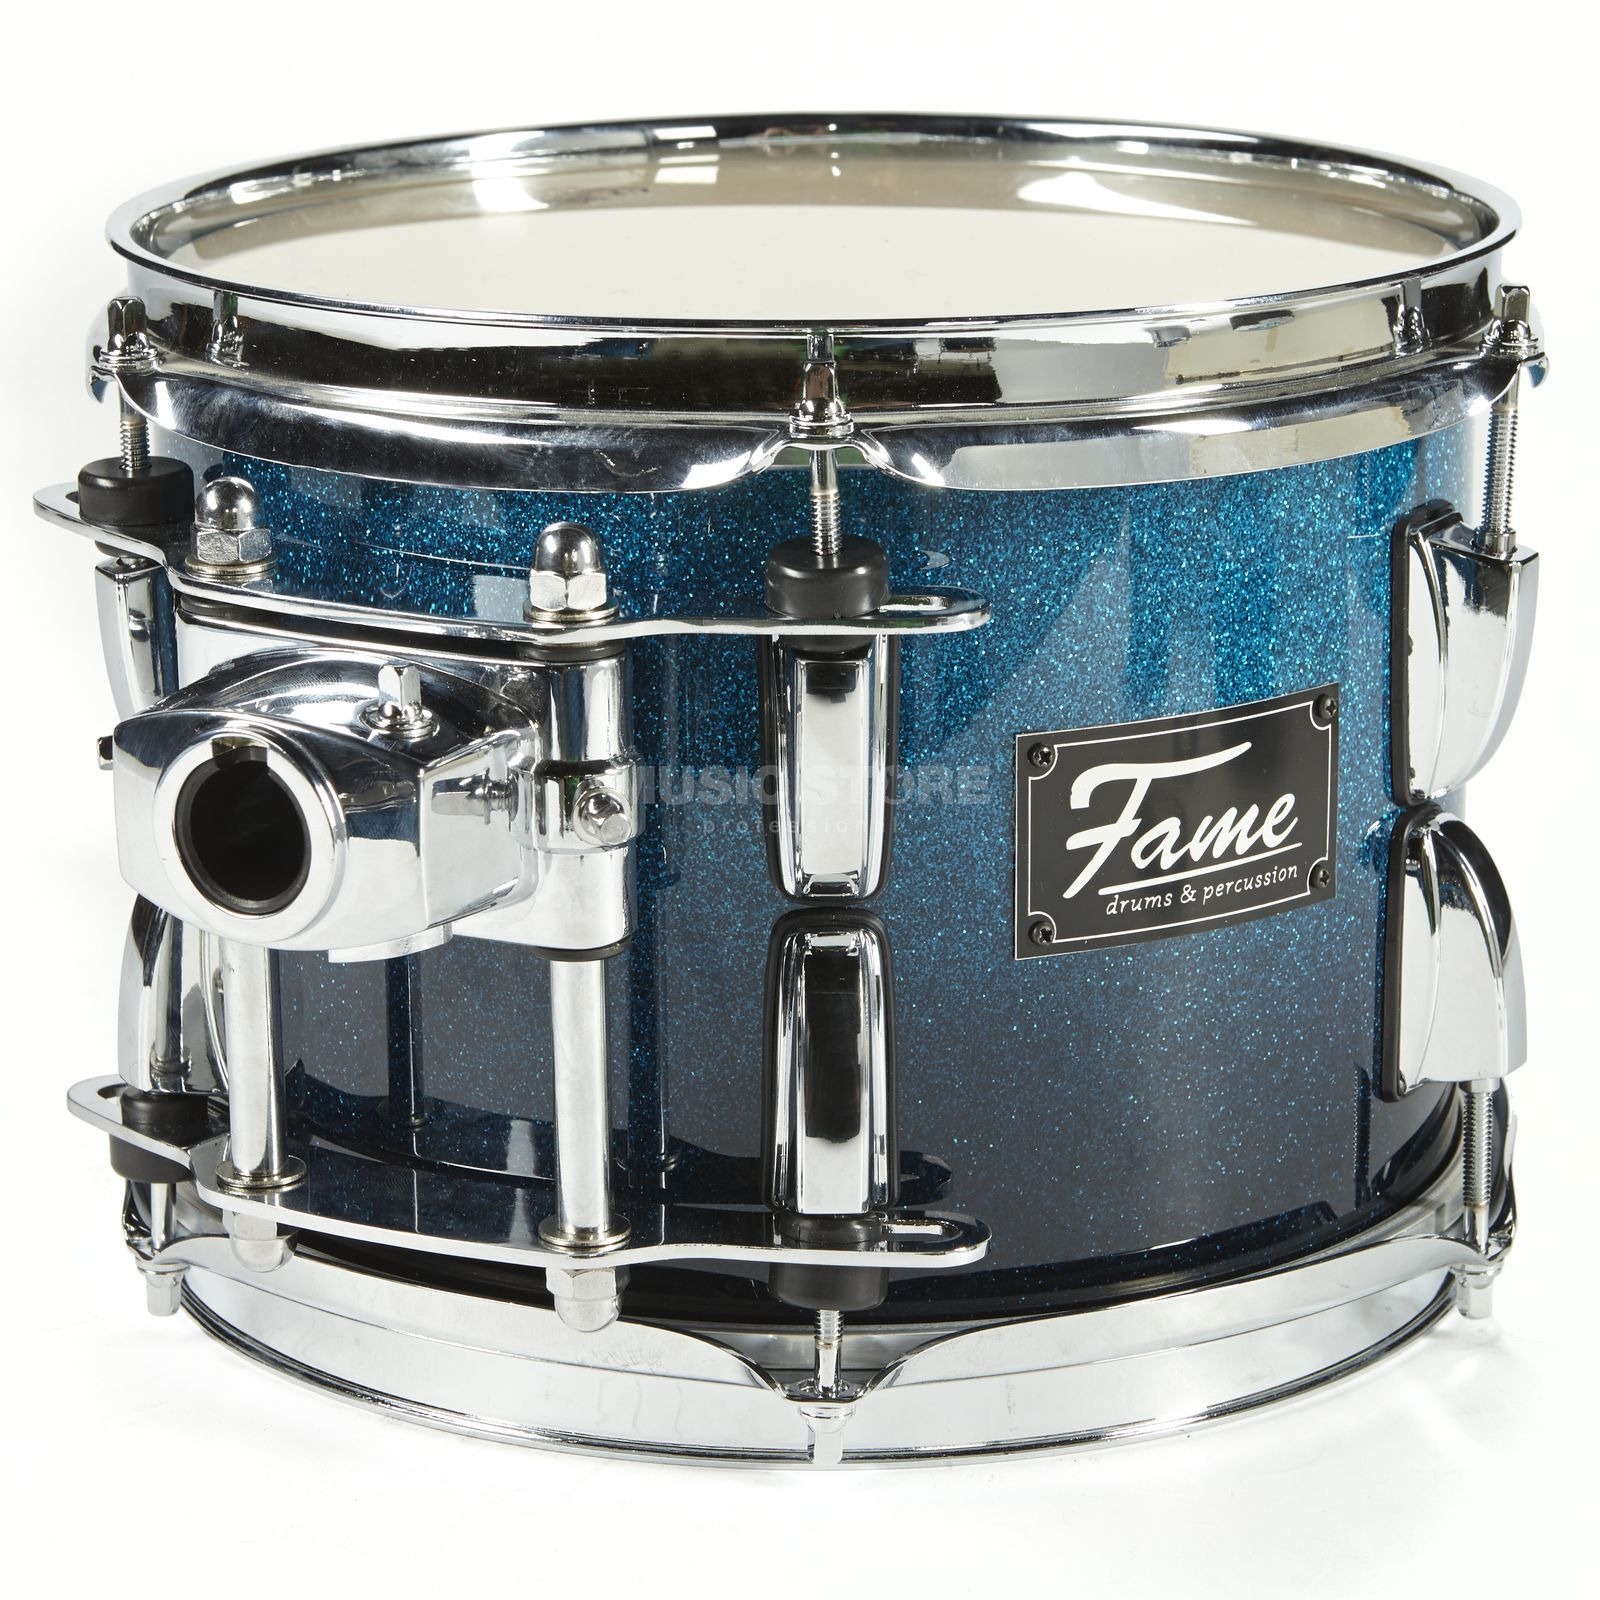 "Fame Fire Tom 13""x9"", #Blue Fade Sparkle Product Image"